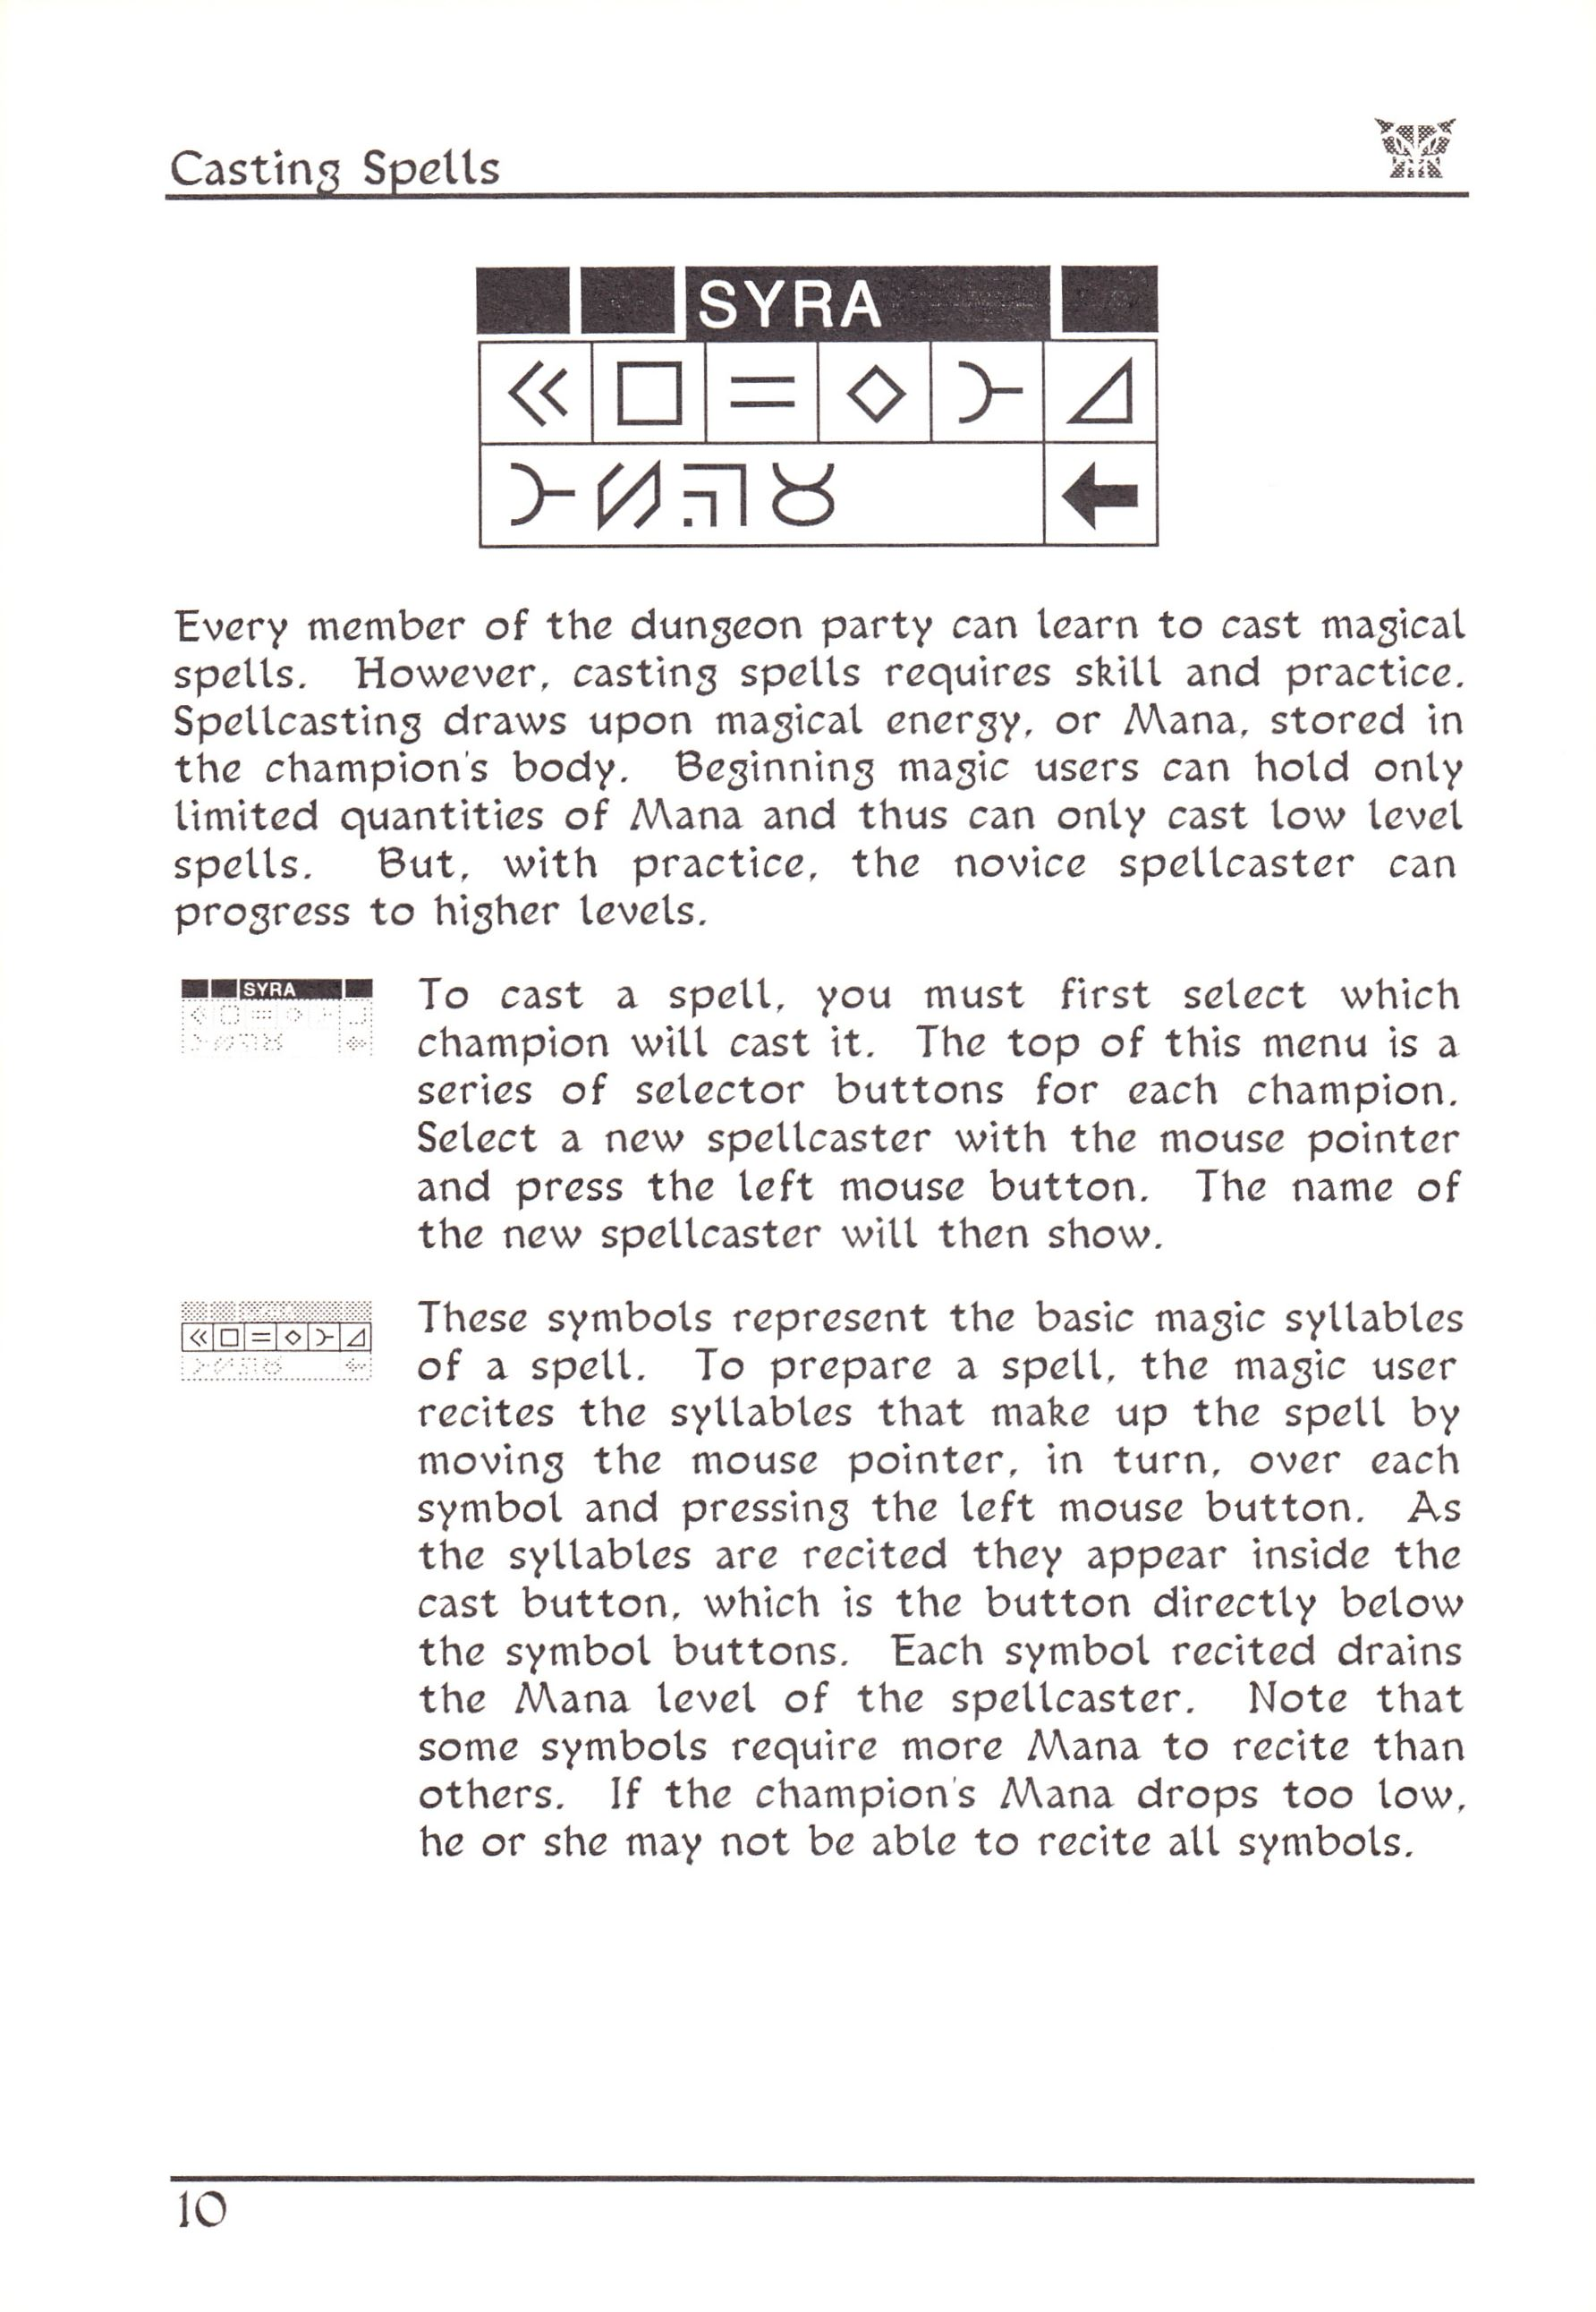 Game - Dungeon Master - US - Atari ST - Early Box - Manual - Page 034 - Scan